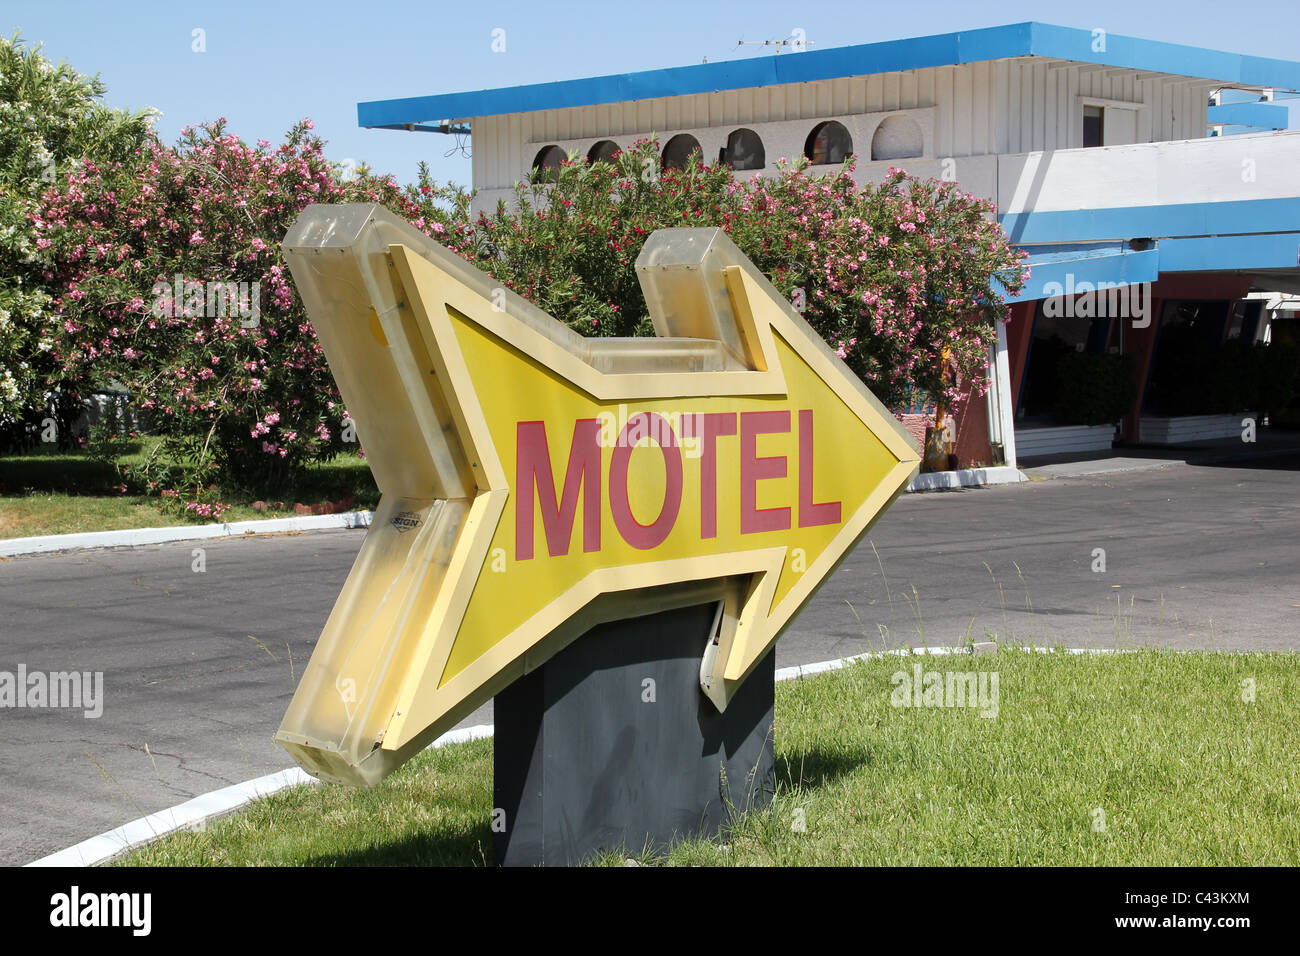 Motel Sign - Stock Image